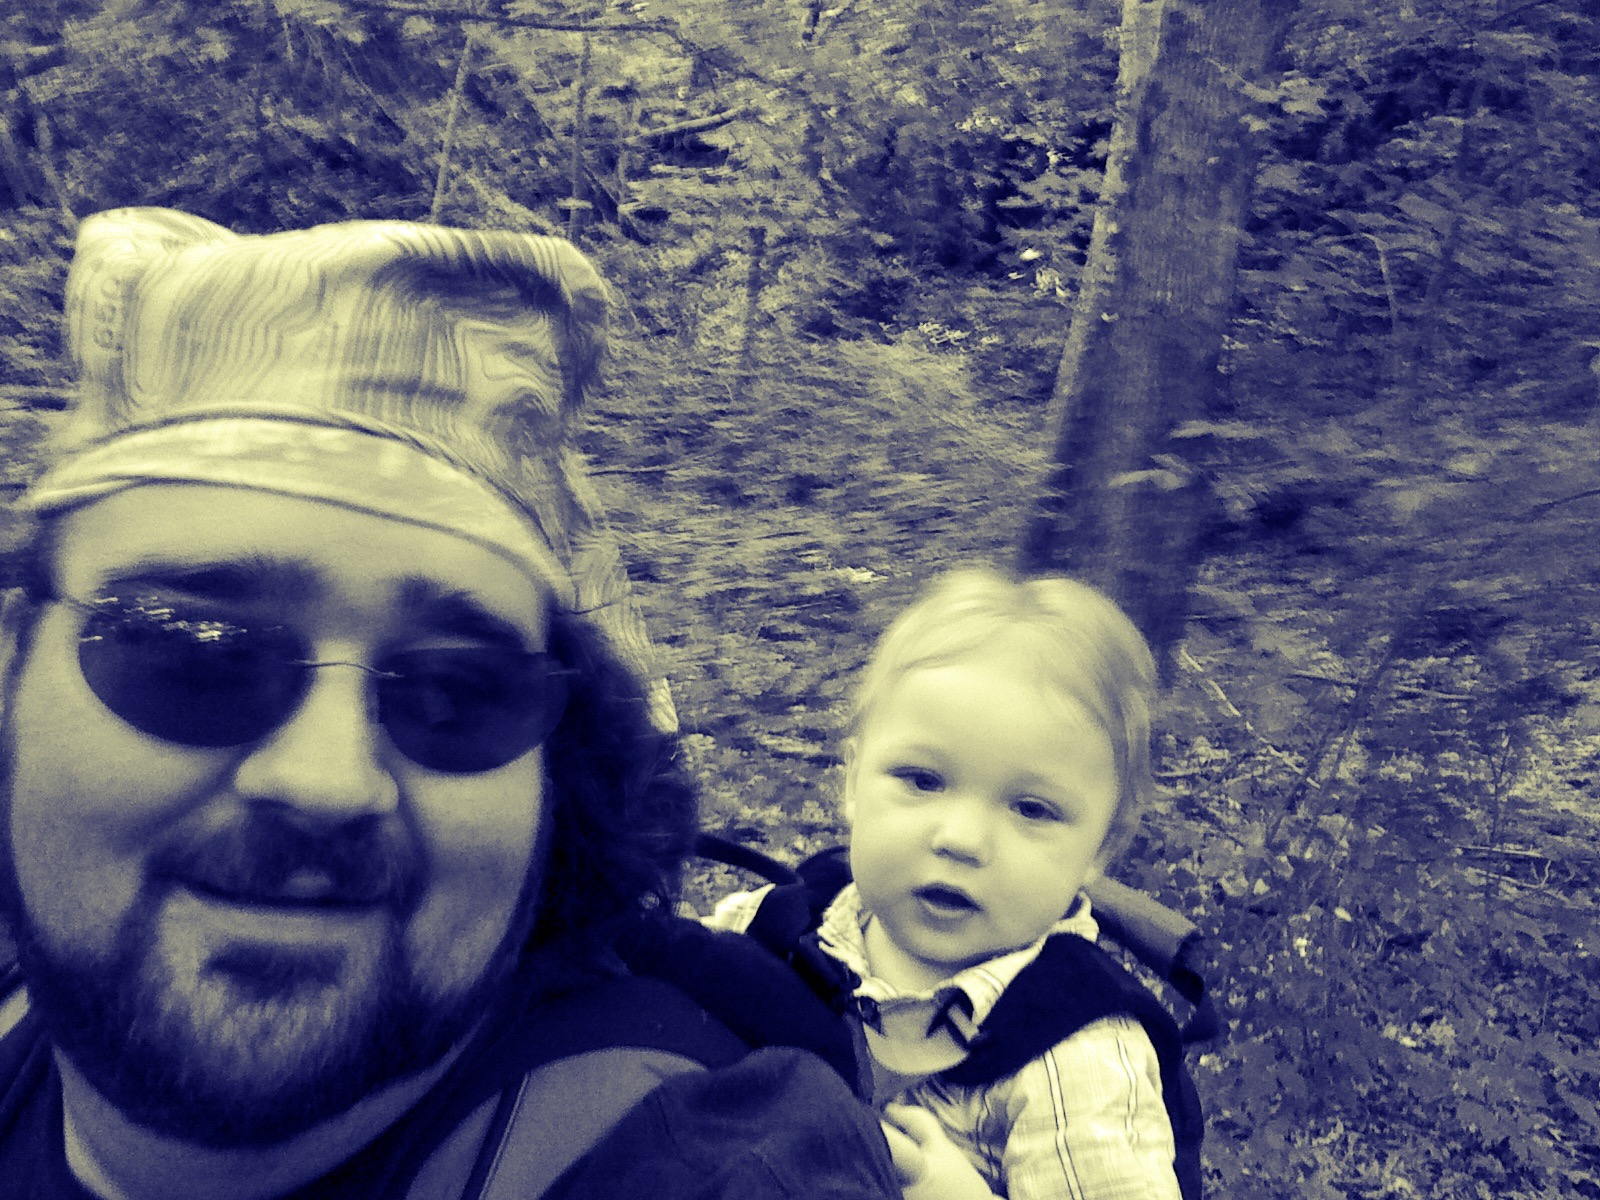 Hiking to one of the oldest caches in TN with my son, Liam